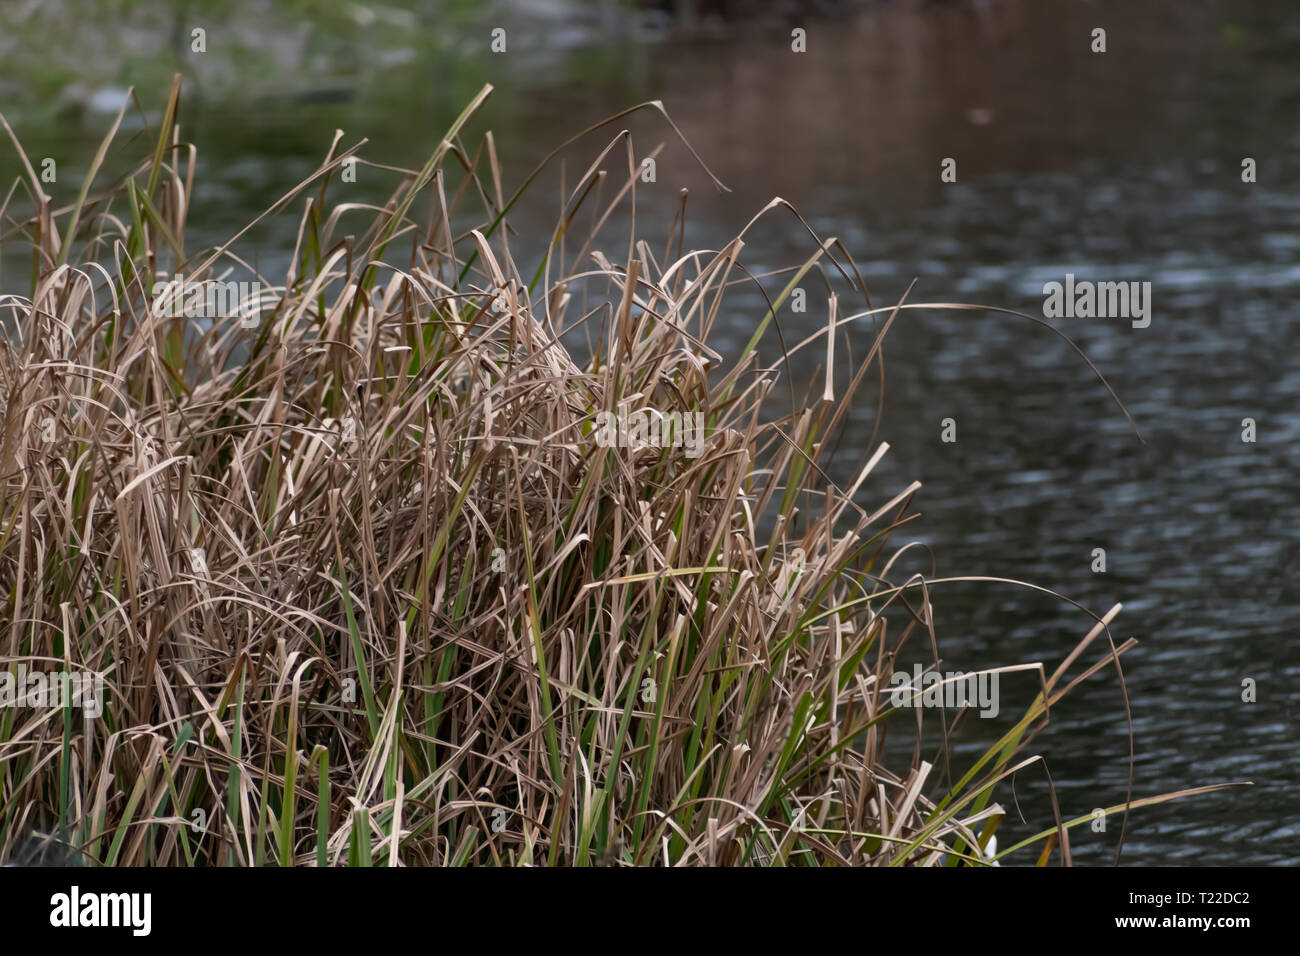 Wild grass growing next to pond in the park. Soft background water shot. Nature in the city. - Stock Image